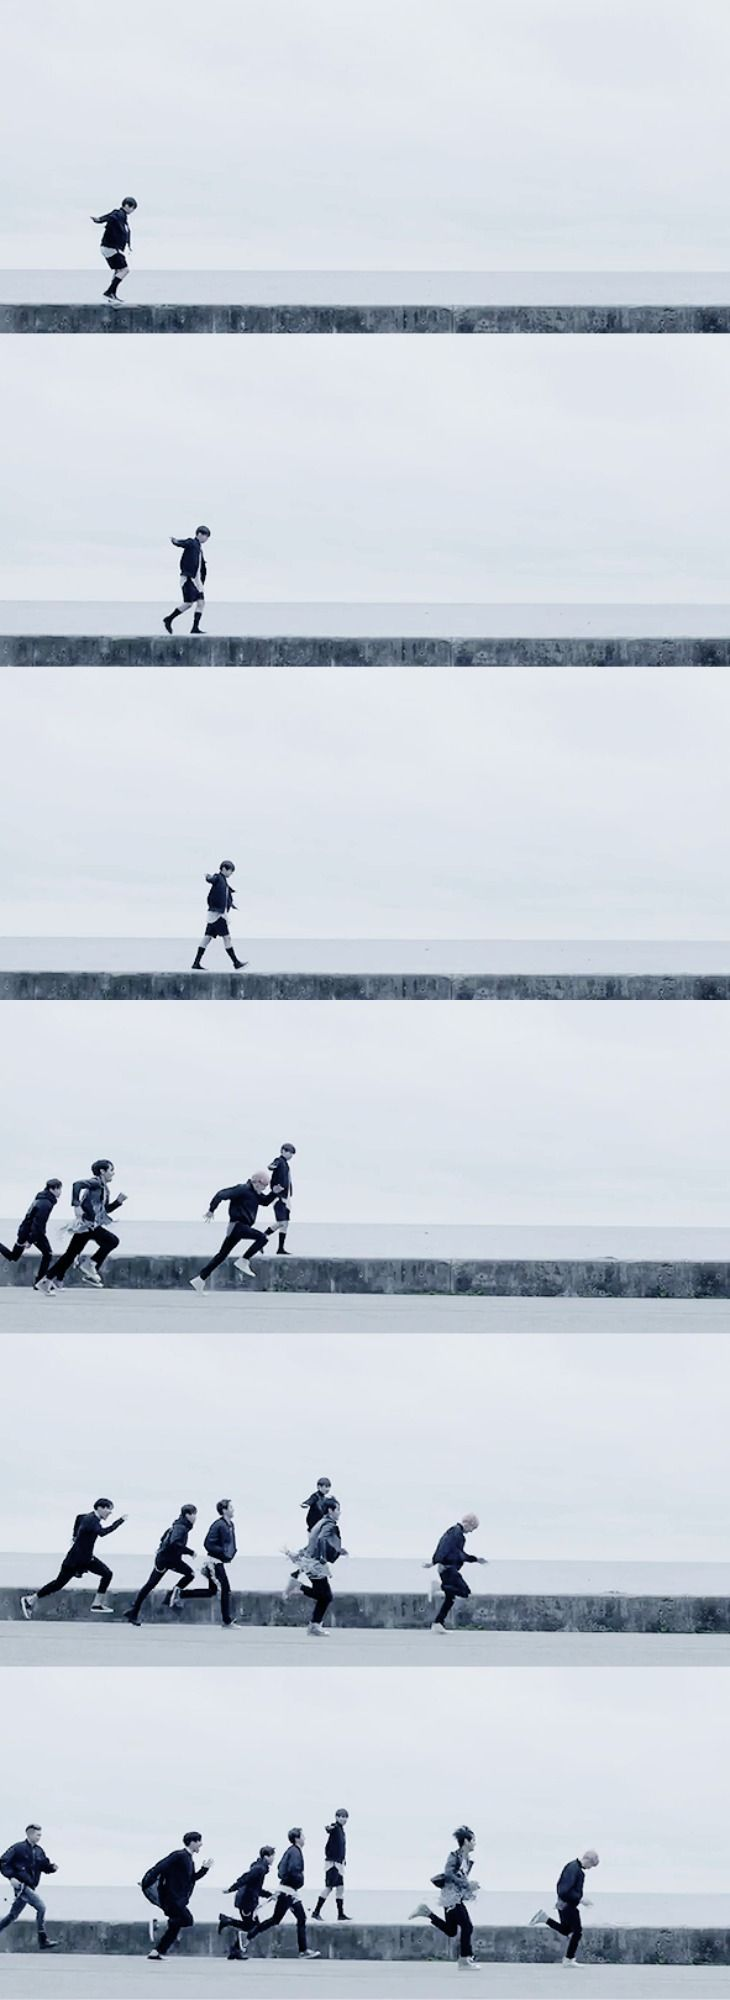 ☆ ~ Sometime We Are Like Stars. We Fall So Someone's Wish Can Come True. ~ ☆ LH : Yoongi is running? Omg